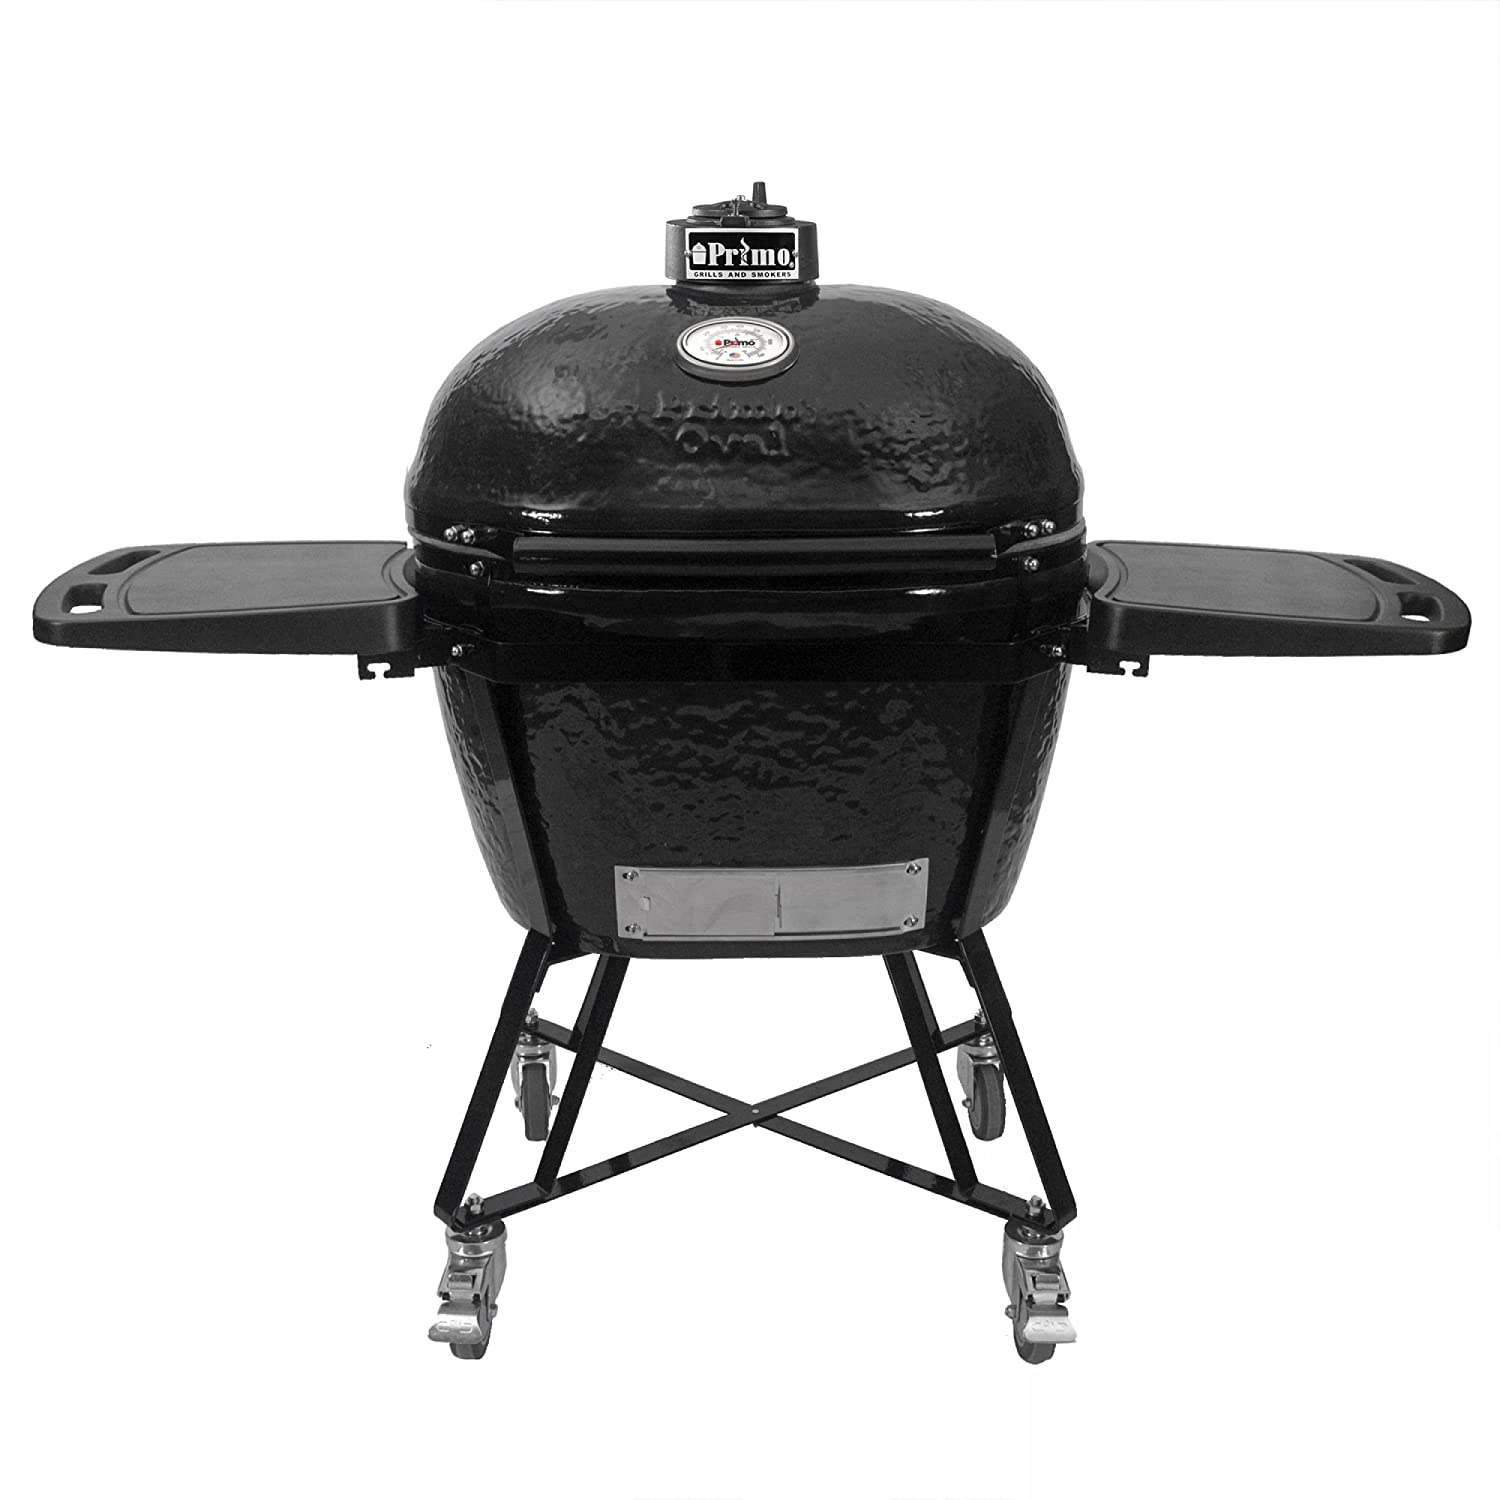 Primo OVAL 400 XL All-in-One Keramik Grill